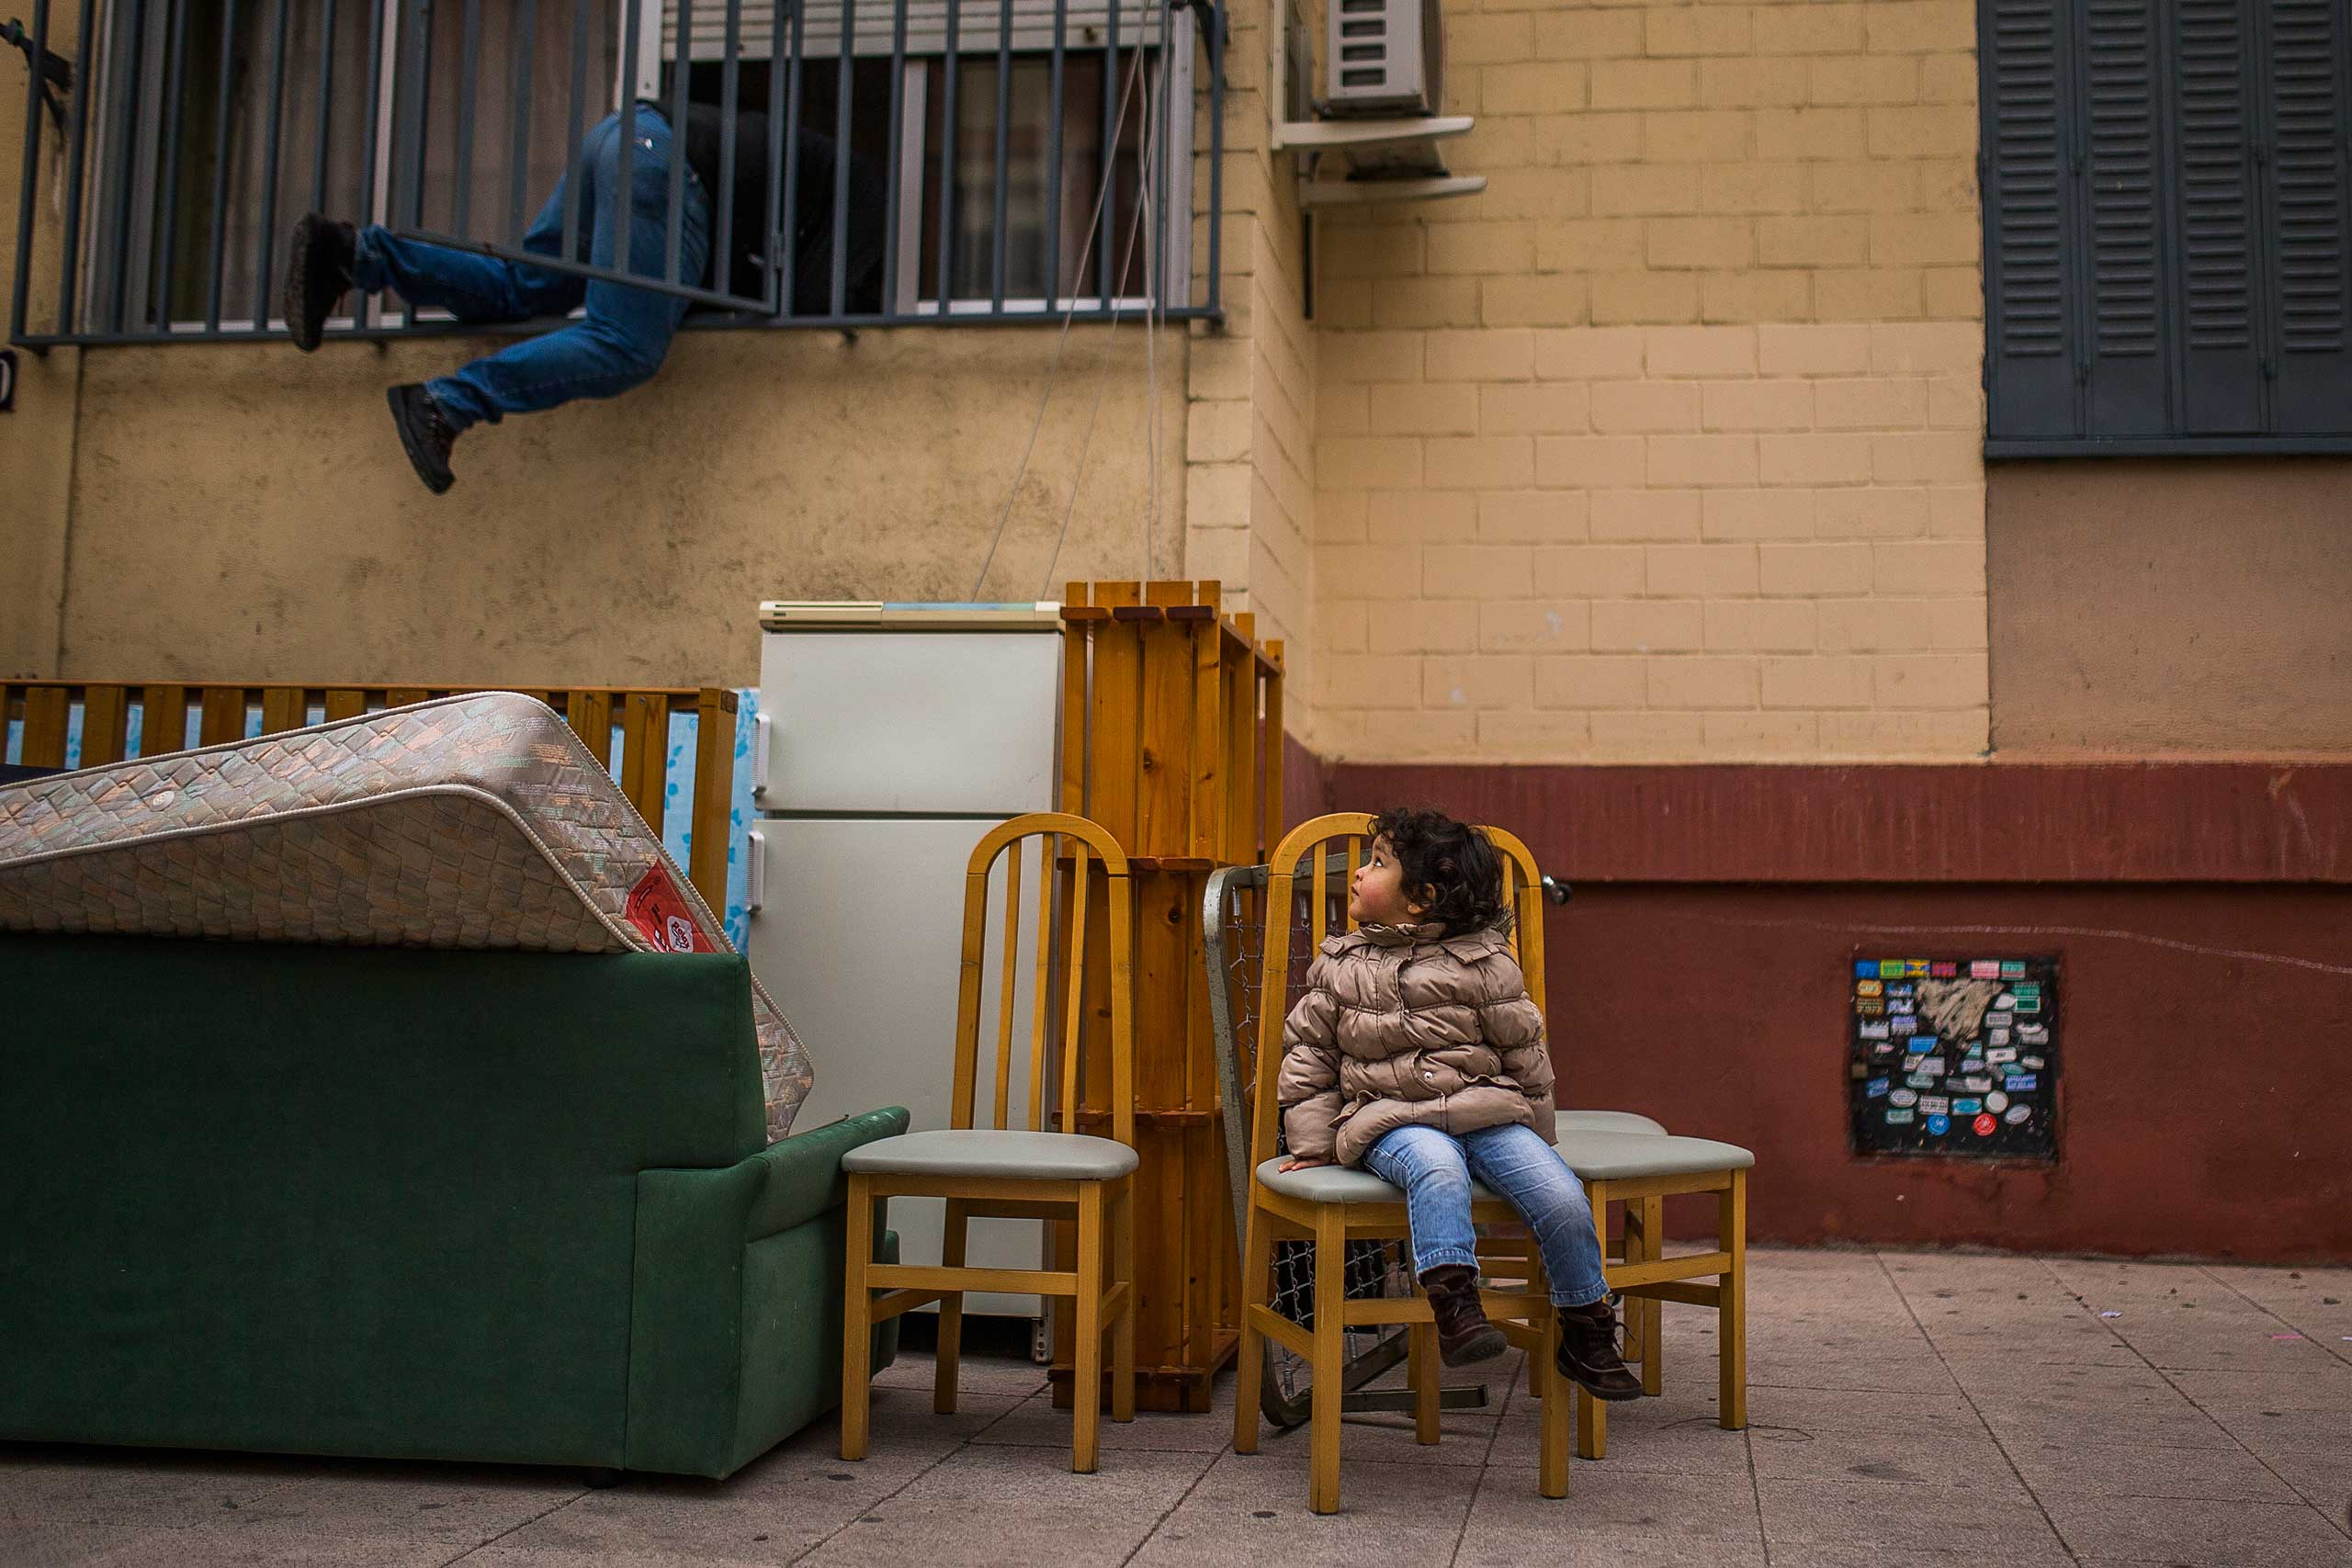 Diana Sofia Meliton, 2, watches a housing rights activist re-open her family's apartment after they were evicted, in Madrid. Feb. 2015.